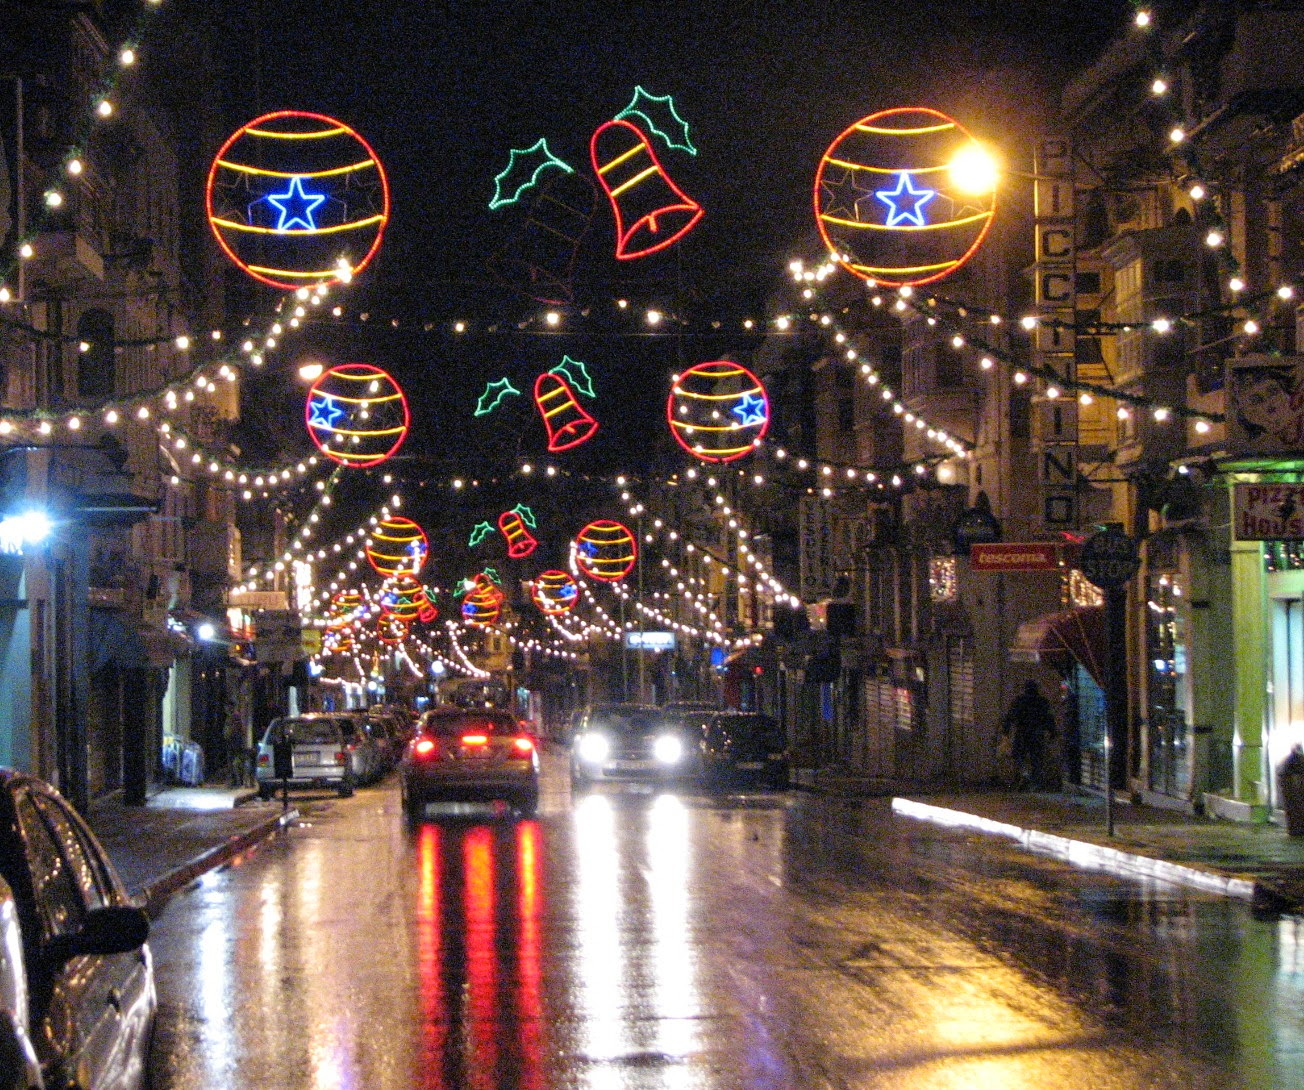 Father Julian's Blog: Christmas Decorations From Malta